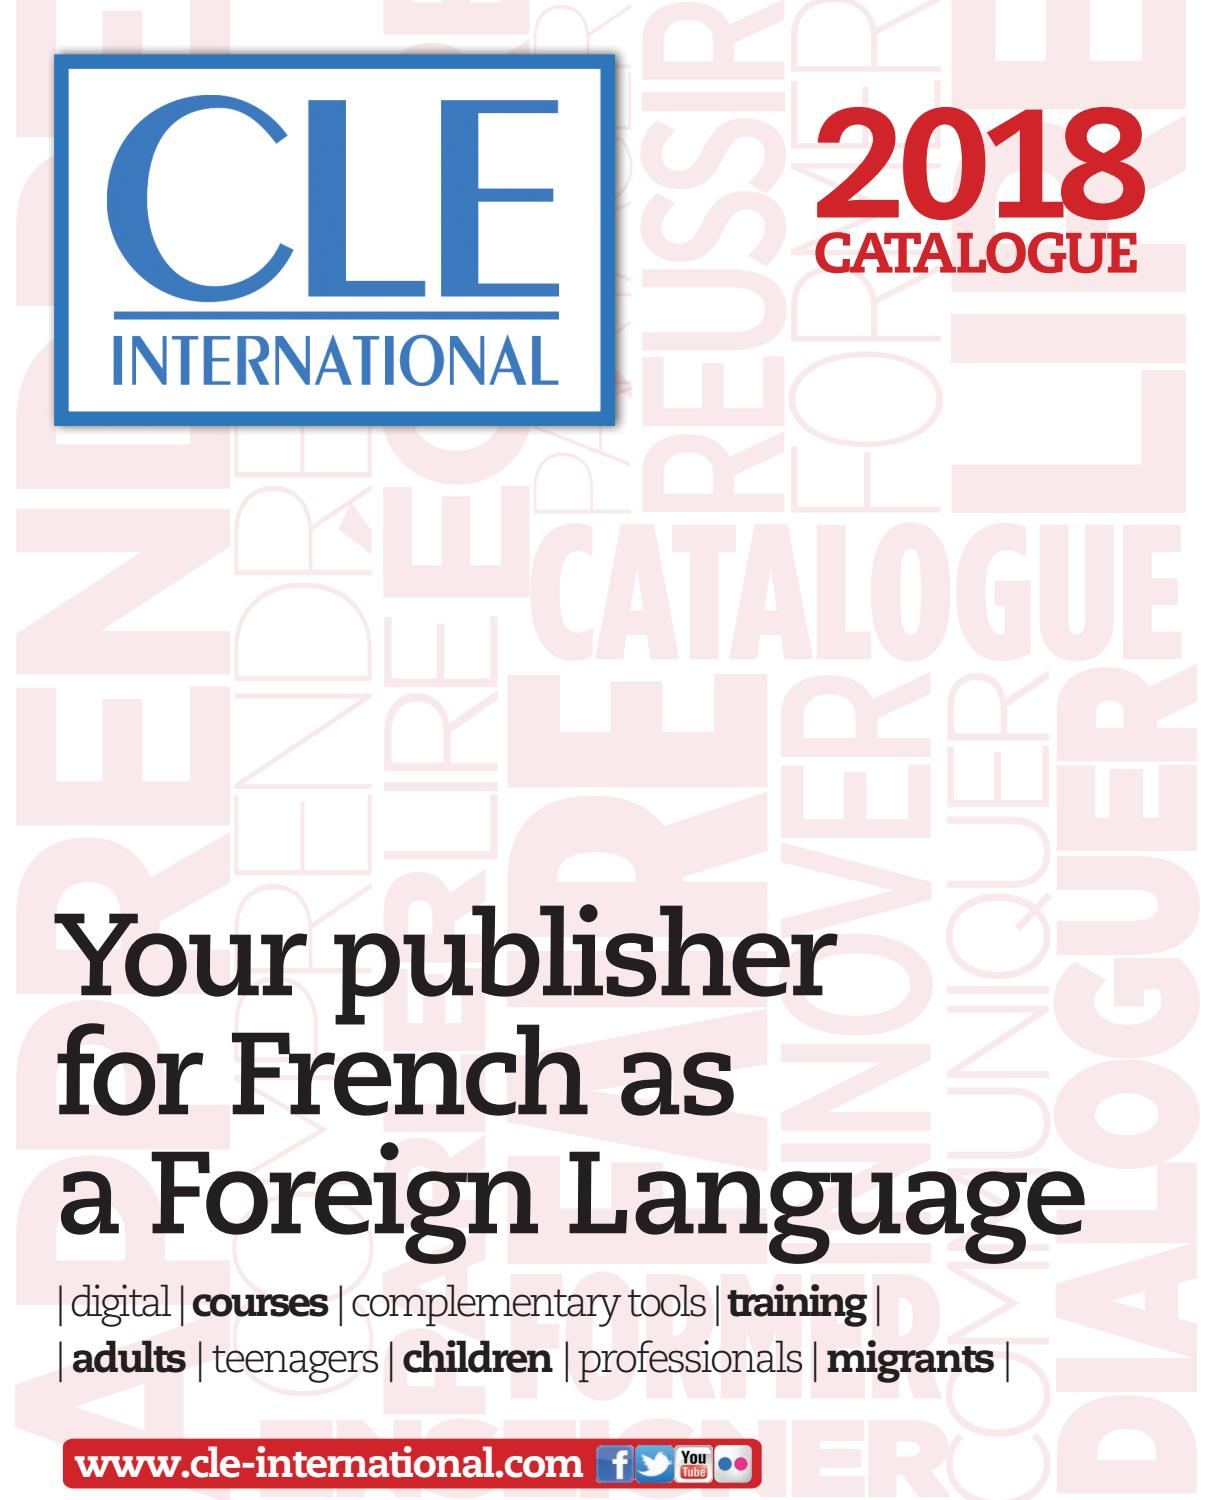 Catalogue Cle International 2018 English Version By Cle